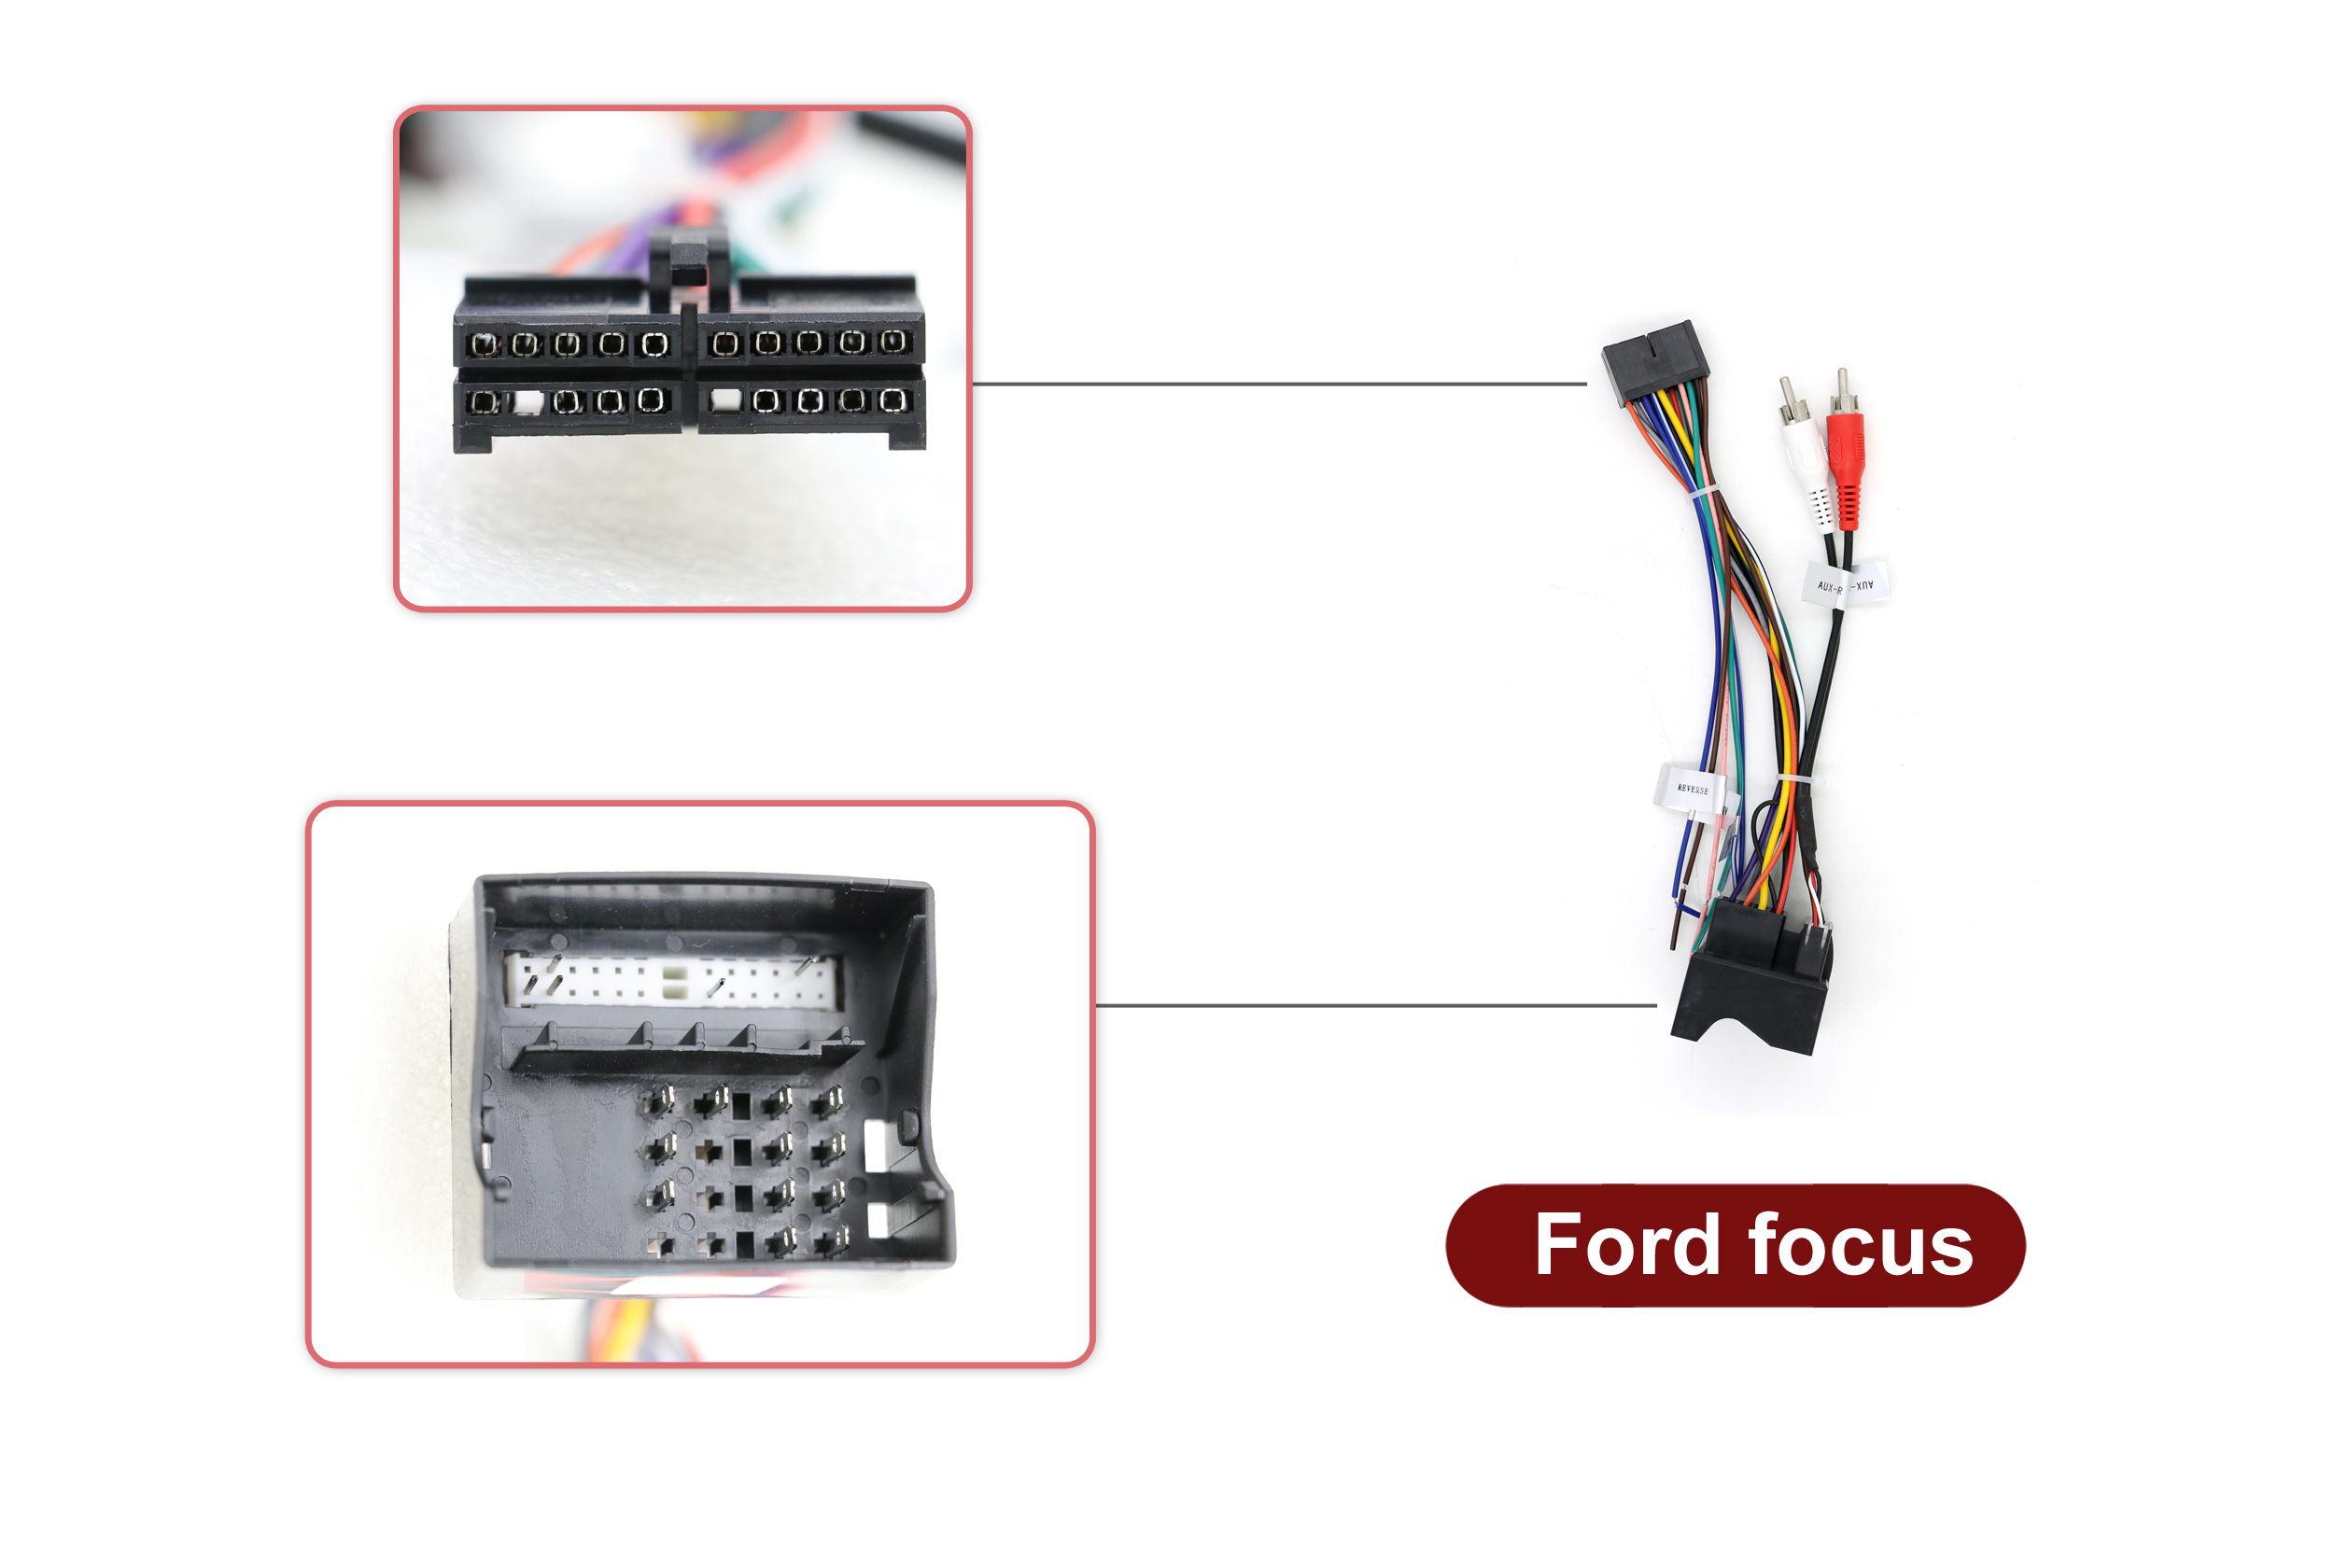 US $9.21 21% OFF|For Ford Focus ISO Wiring Harness Car Radio Adaptor on